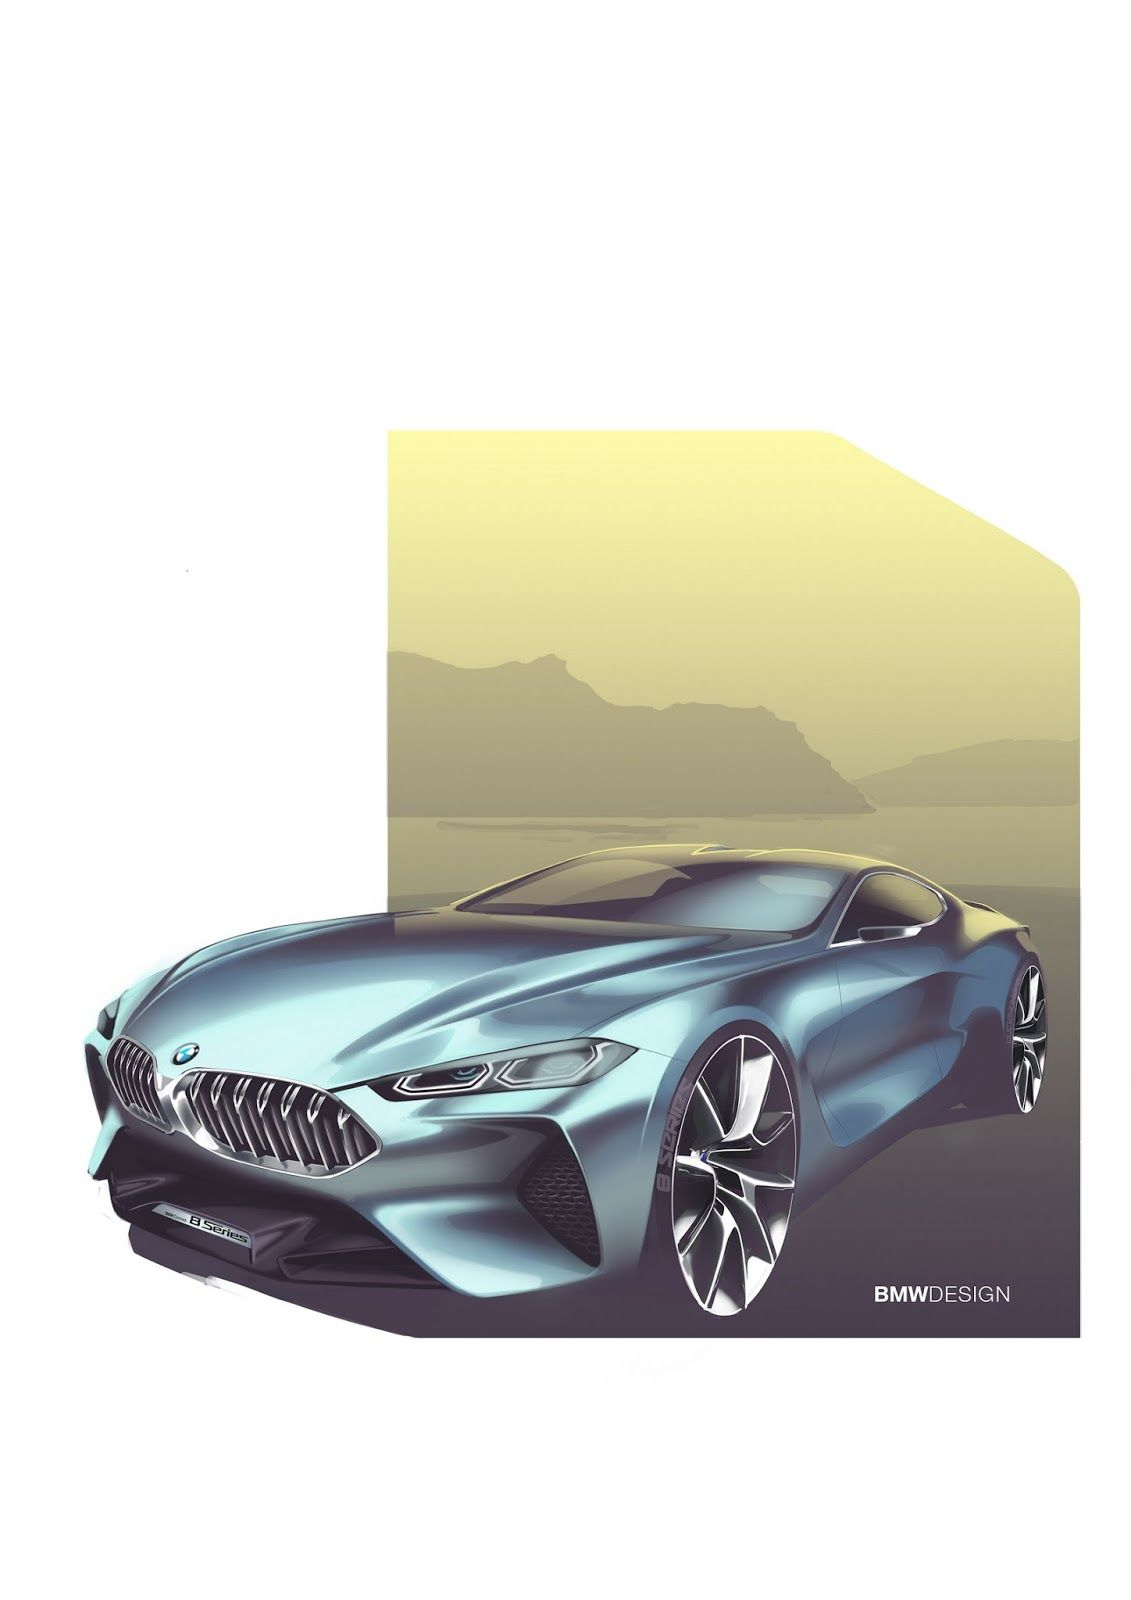 New Bmw 8 Series Concept Revealed Coming In 2018 72 Pics Videos Carscoops Bmw Concept Bmw Design Car Design